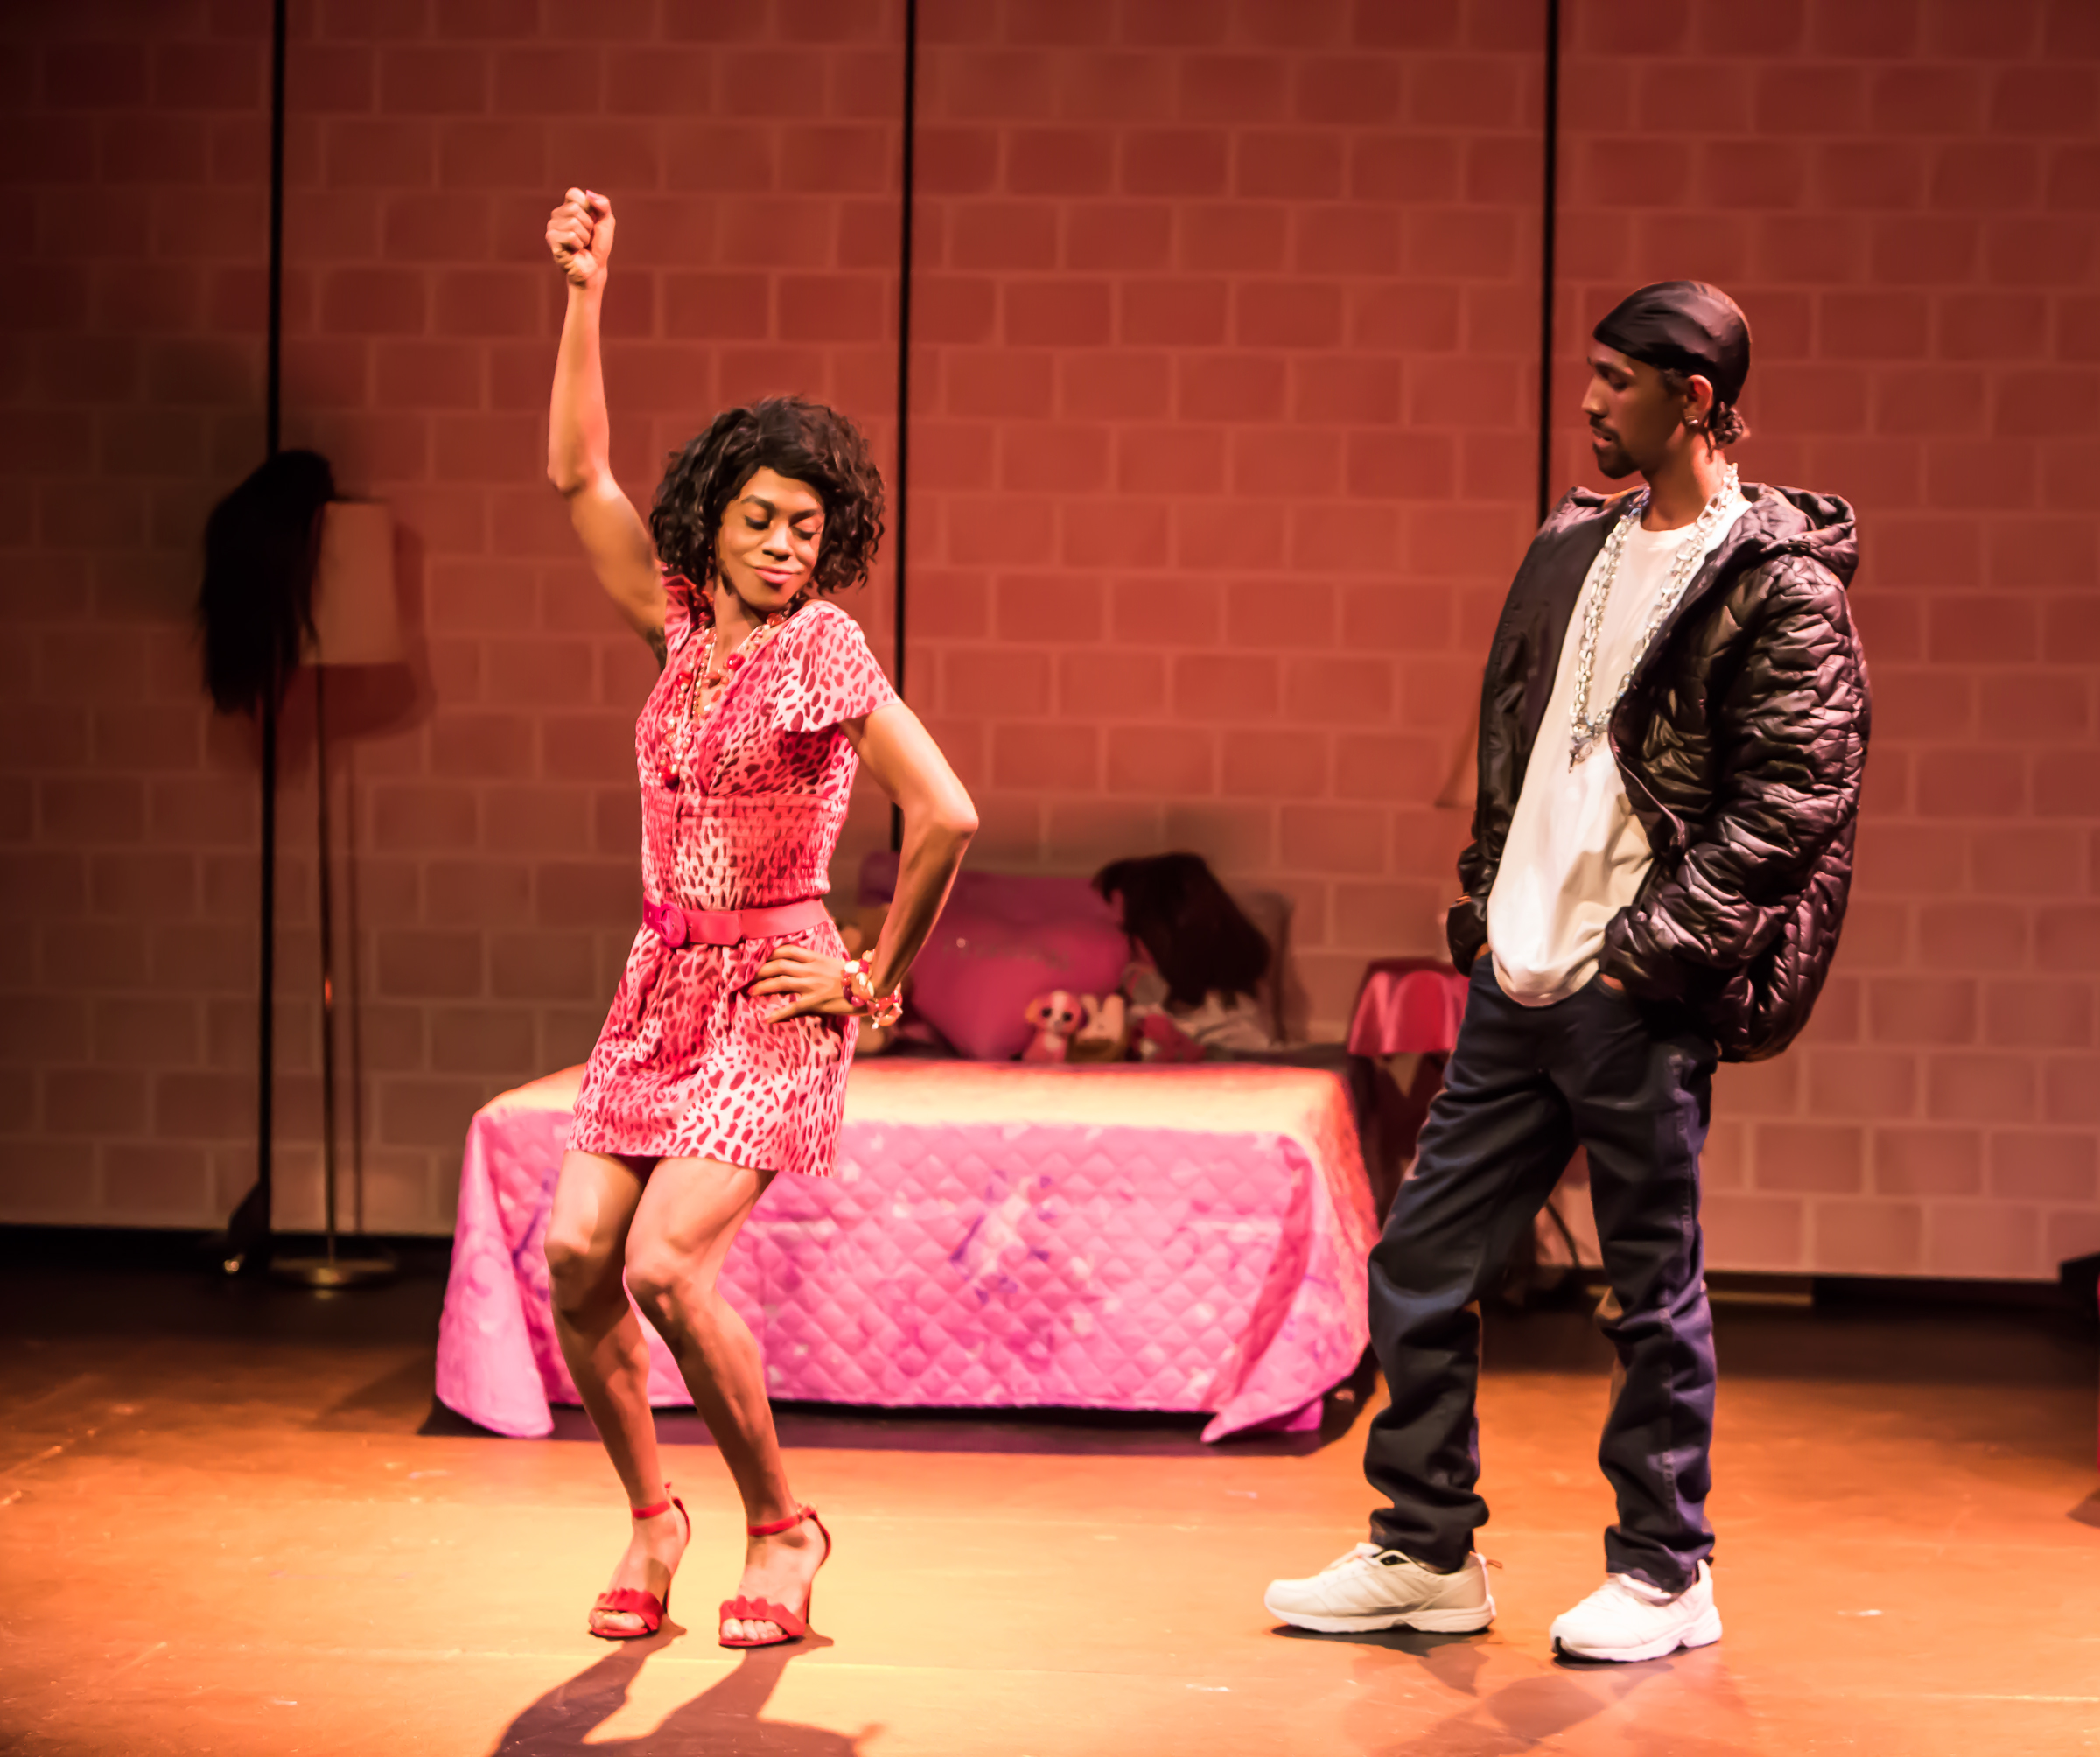 Pictured left to right: Charles Peoples III as Pink and Maurice André San-Chez as Bradford/DeShawn in THE LEGEND OF PINK by Kheven LaGrone, directed by AeJay Mitchell; A Theatre Rhinoceros Production at The Gateway Theatre (formerly The Eureka Theatre.)